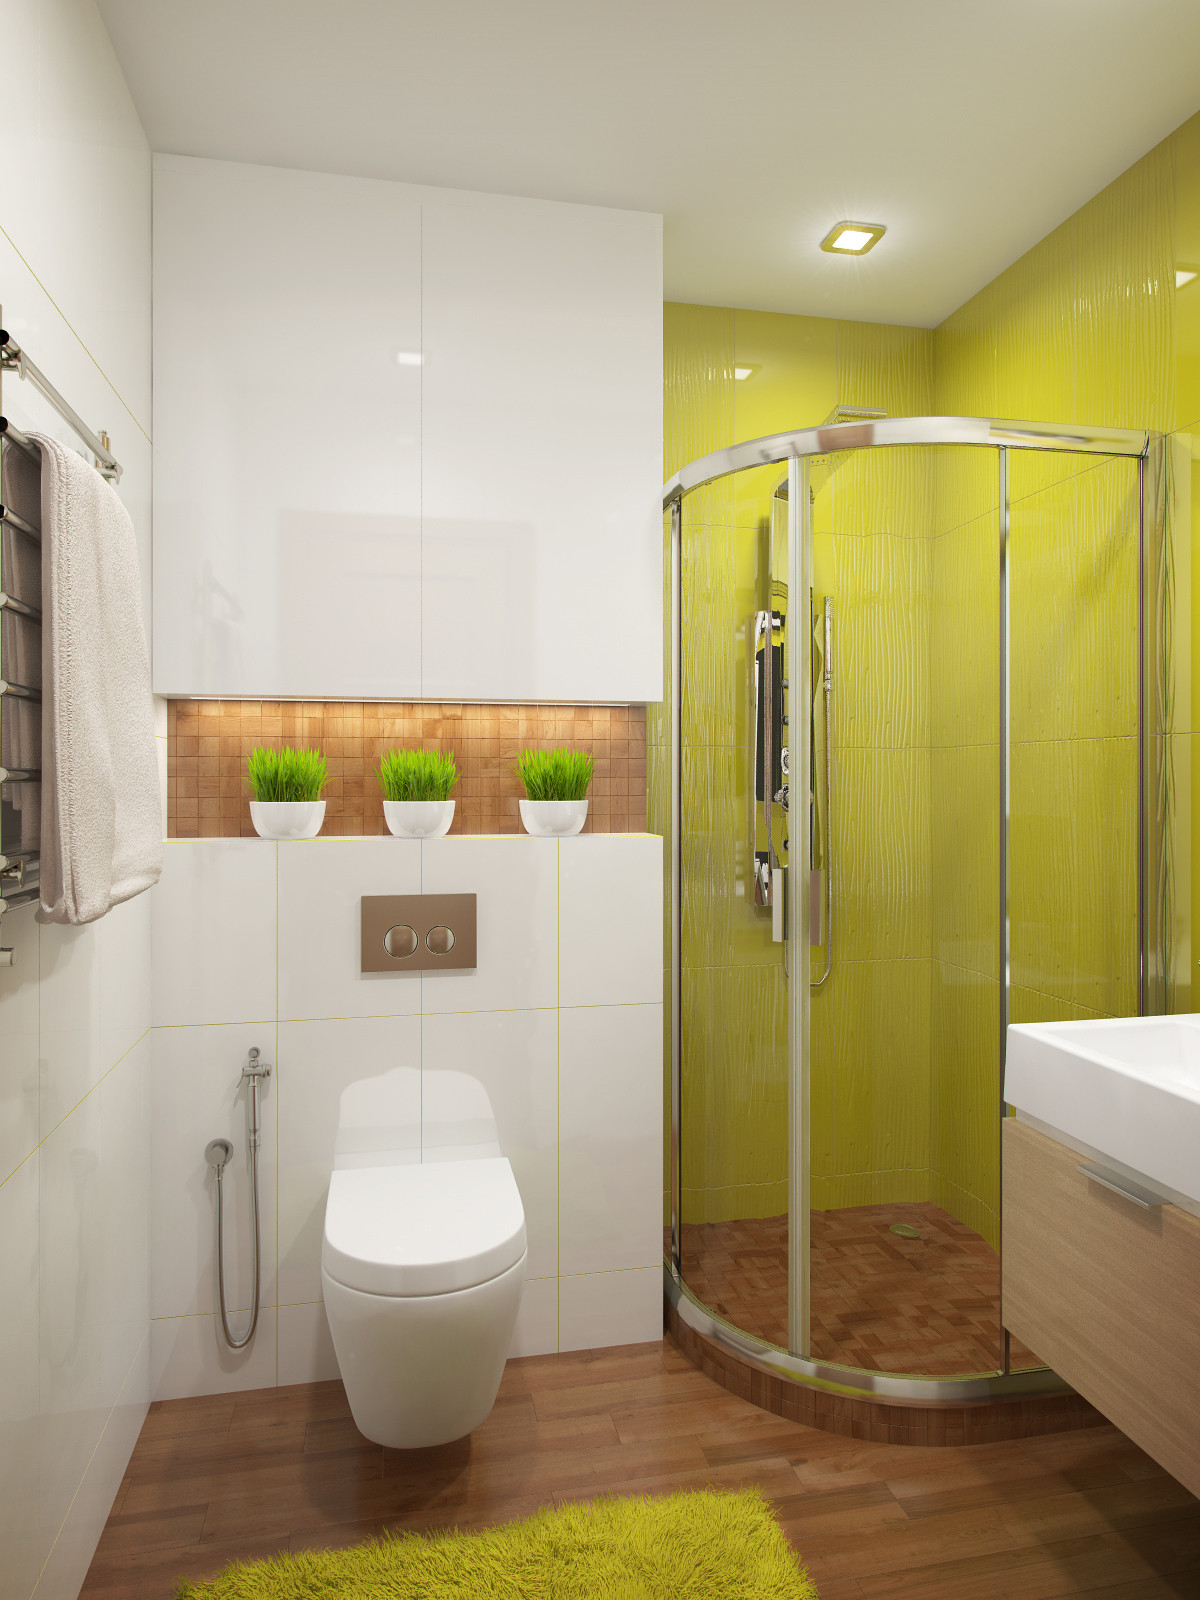 Design A Bathroom  A Cozy Apartment in Kyiv with Soft Citrus Accents